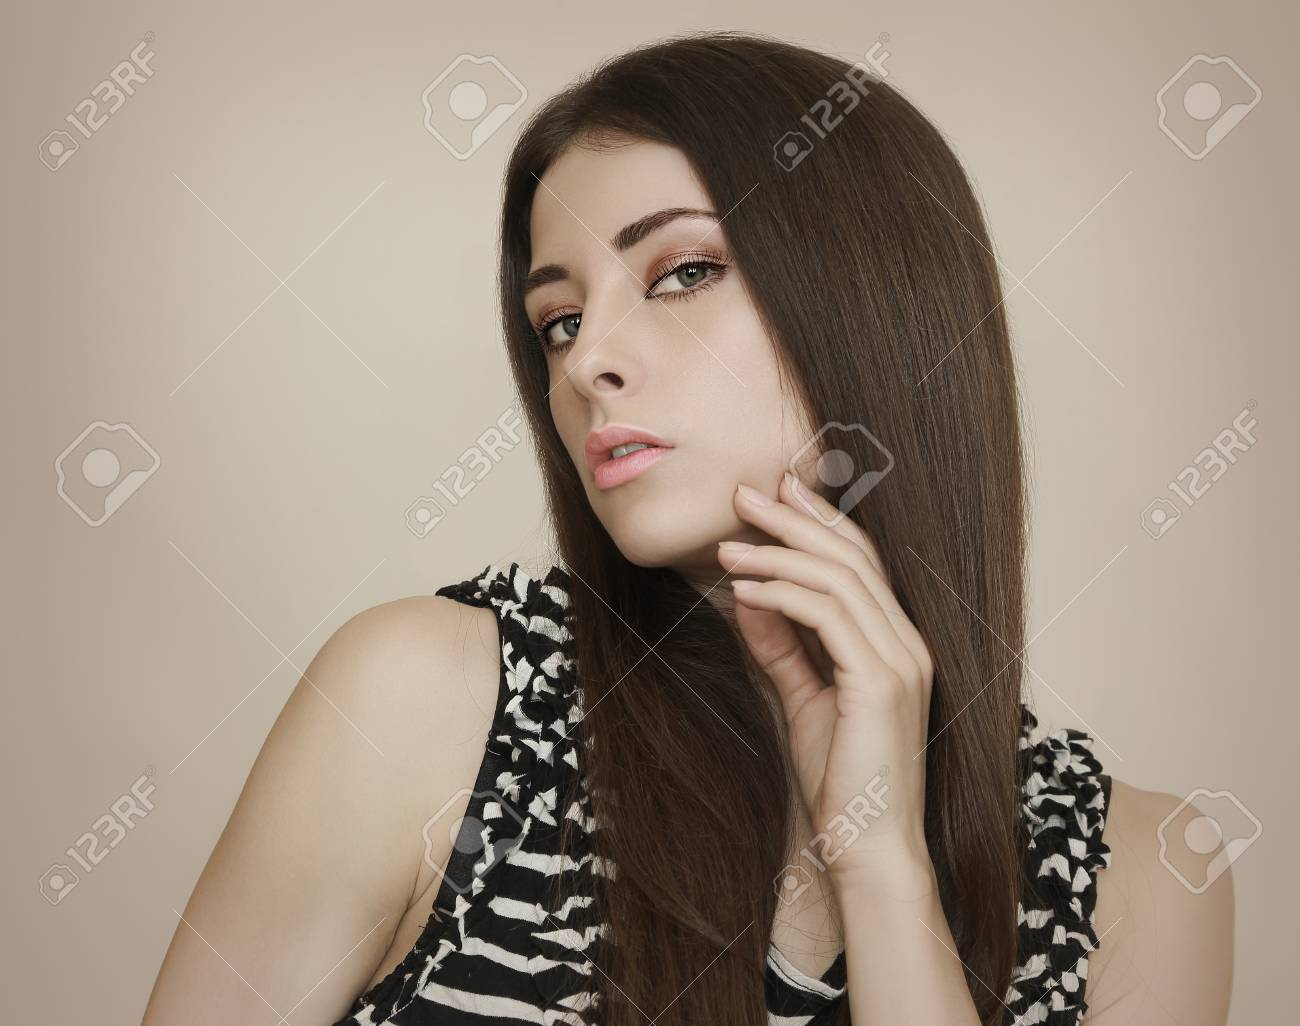 Portrait of beautiful woman with long hair and sexy look Stock Photo - 18857114